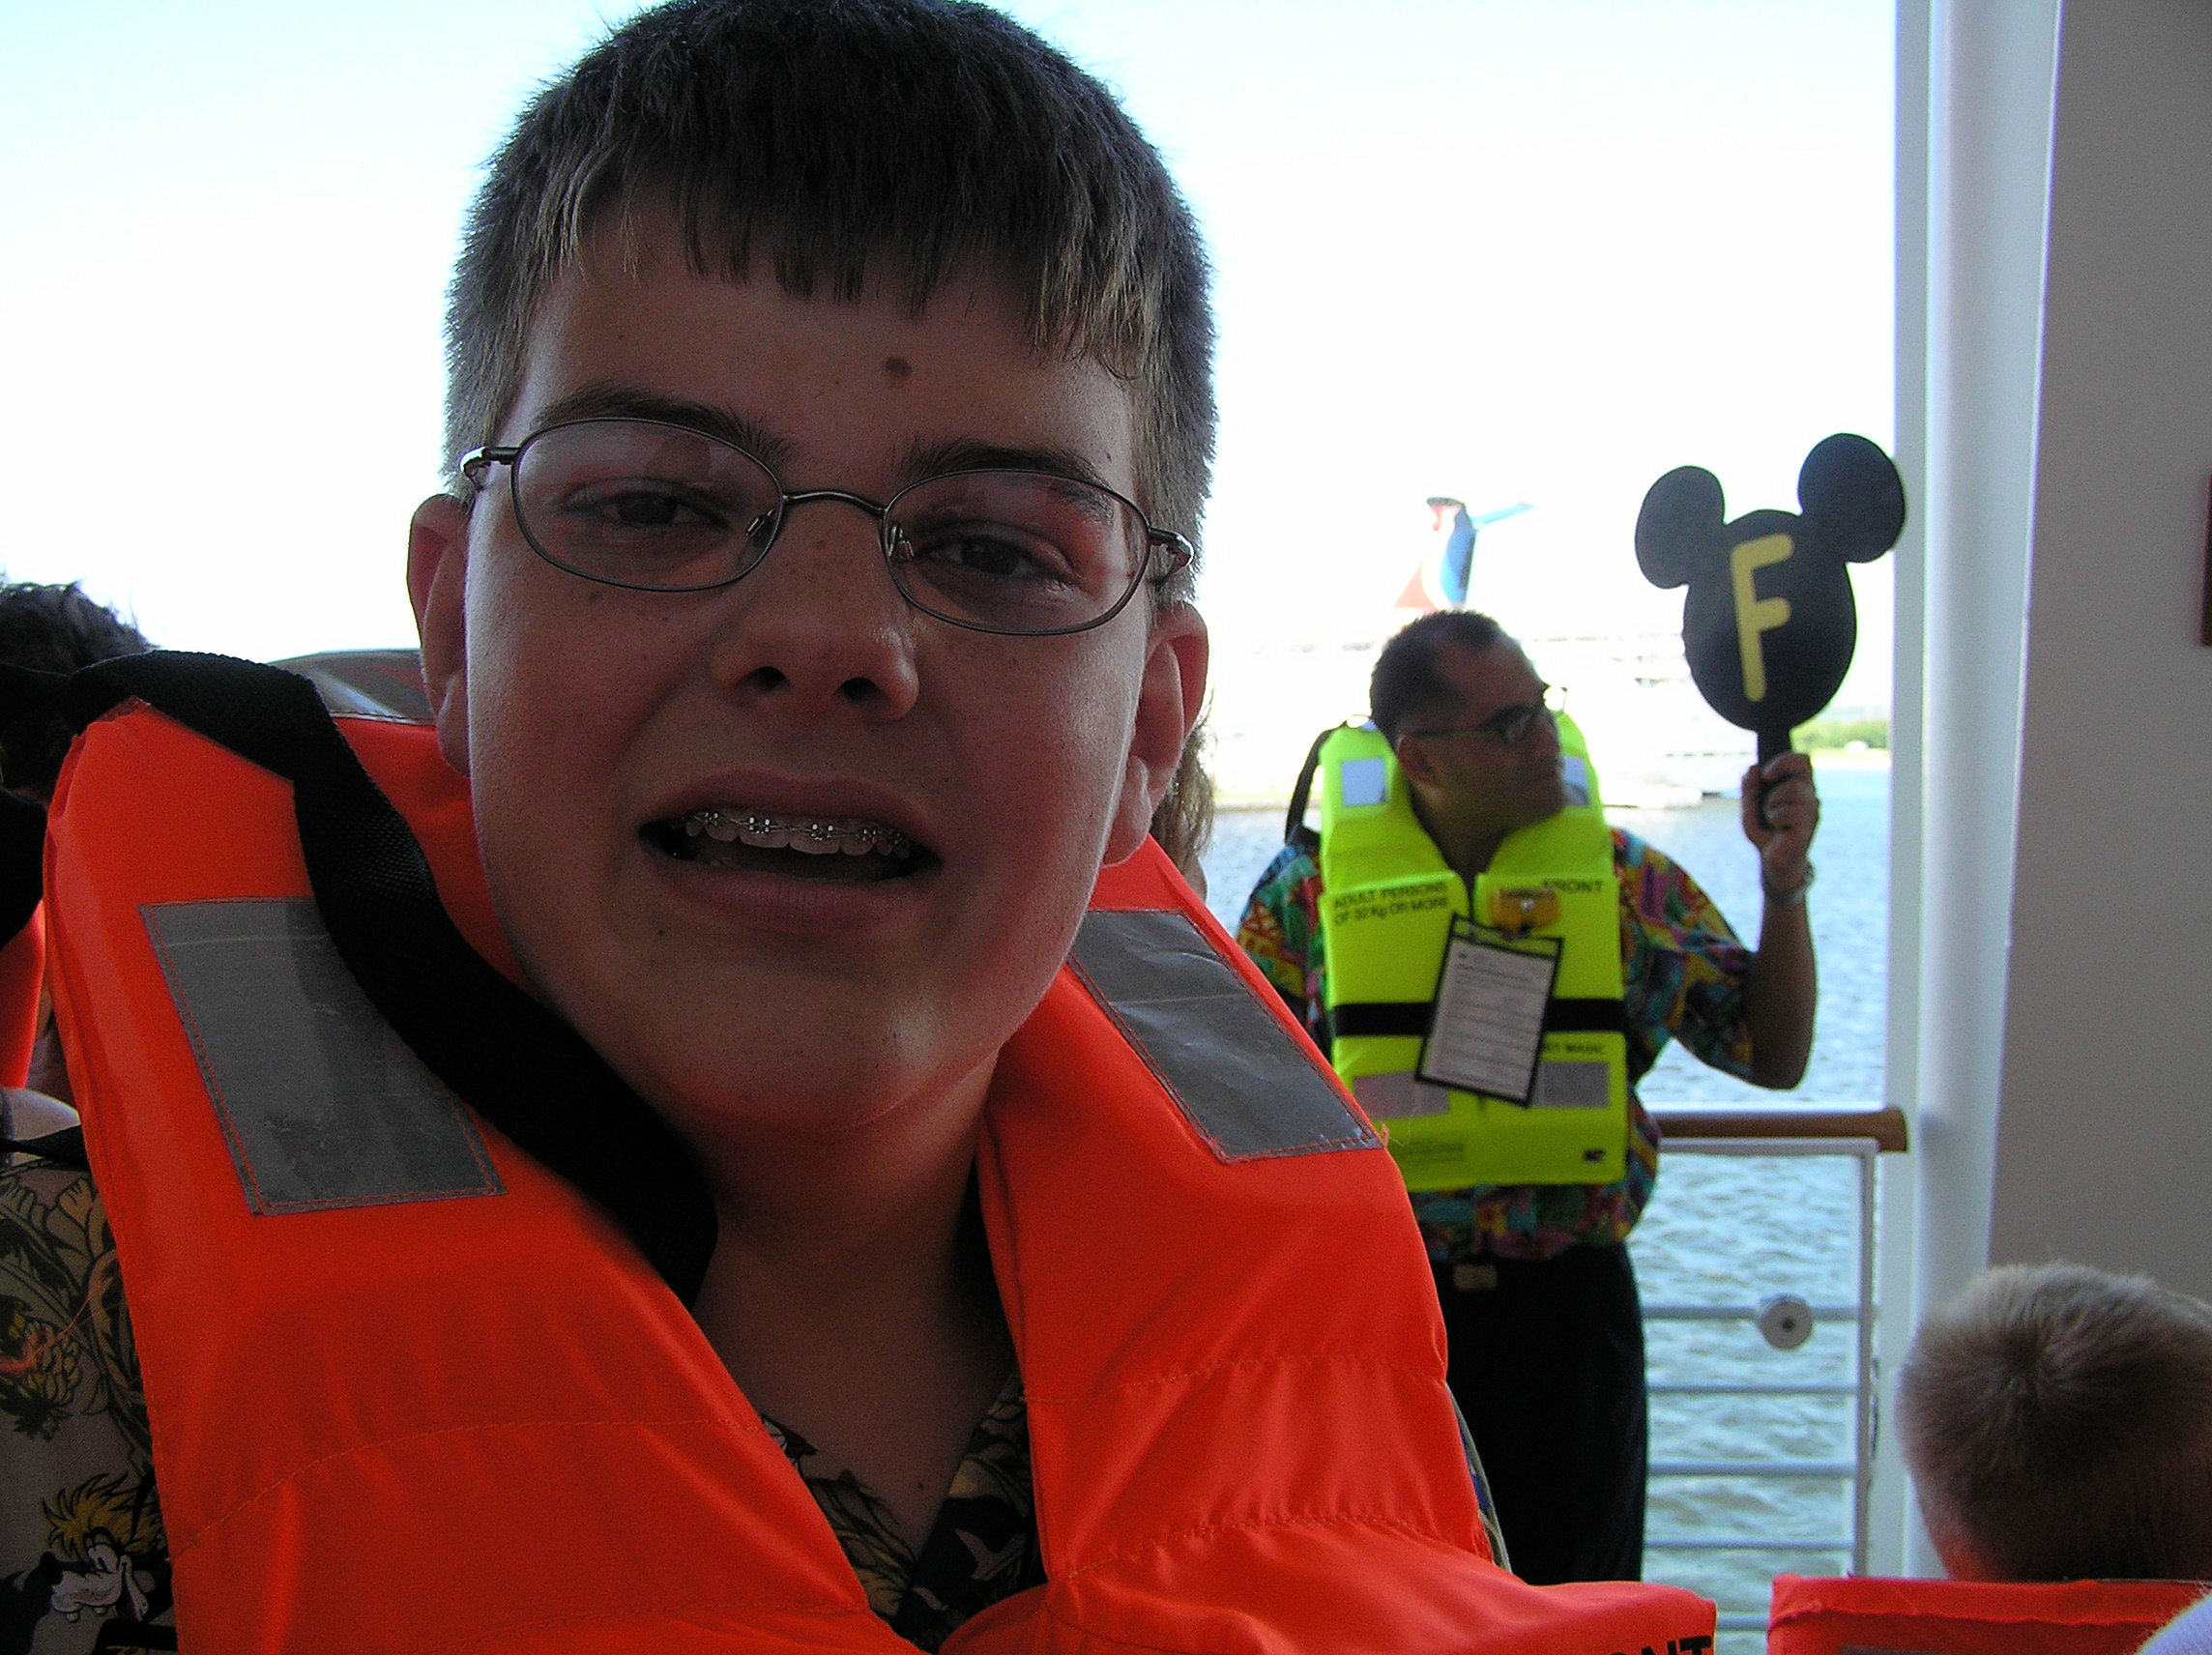 Me at the life boat drill on the Disney Cruise Line.